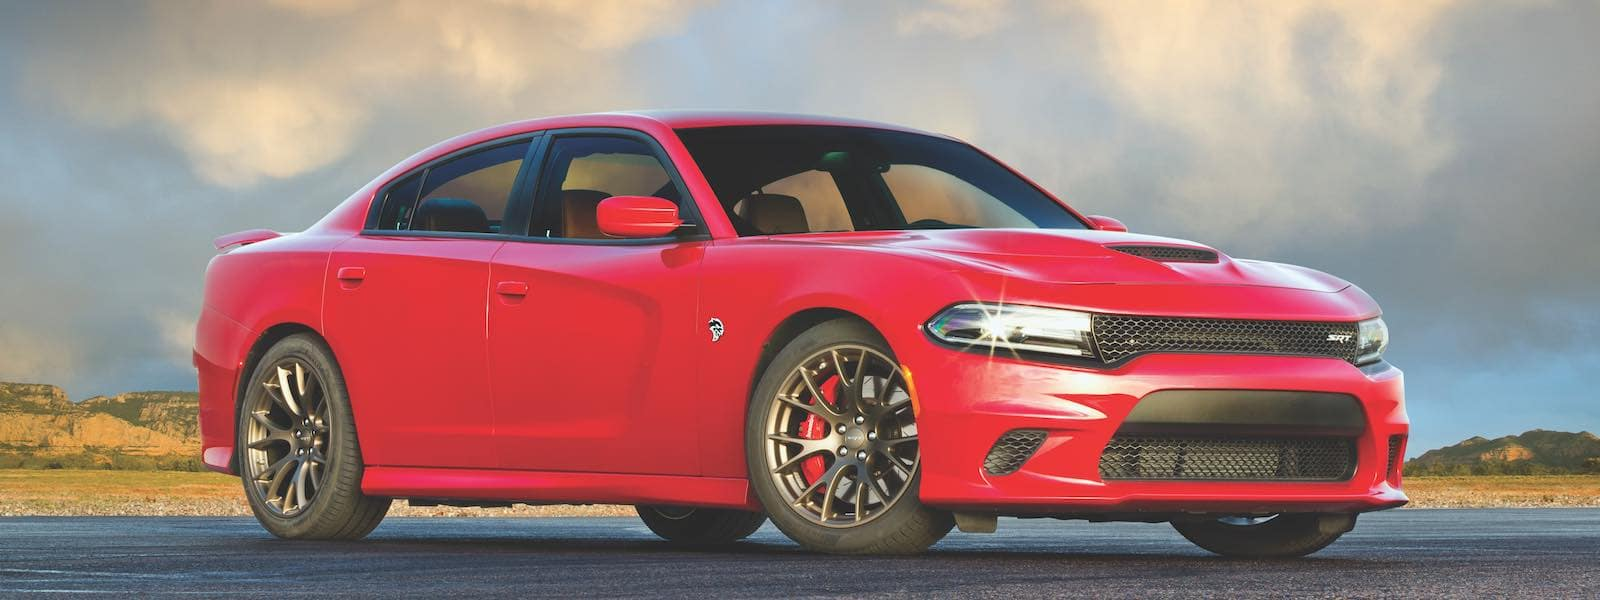 2018 Dodge Charger Sxt Vs Gt Vs R T Vs Daytona Vs Srt